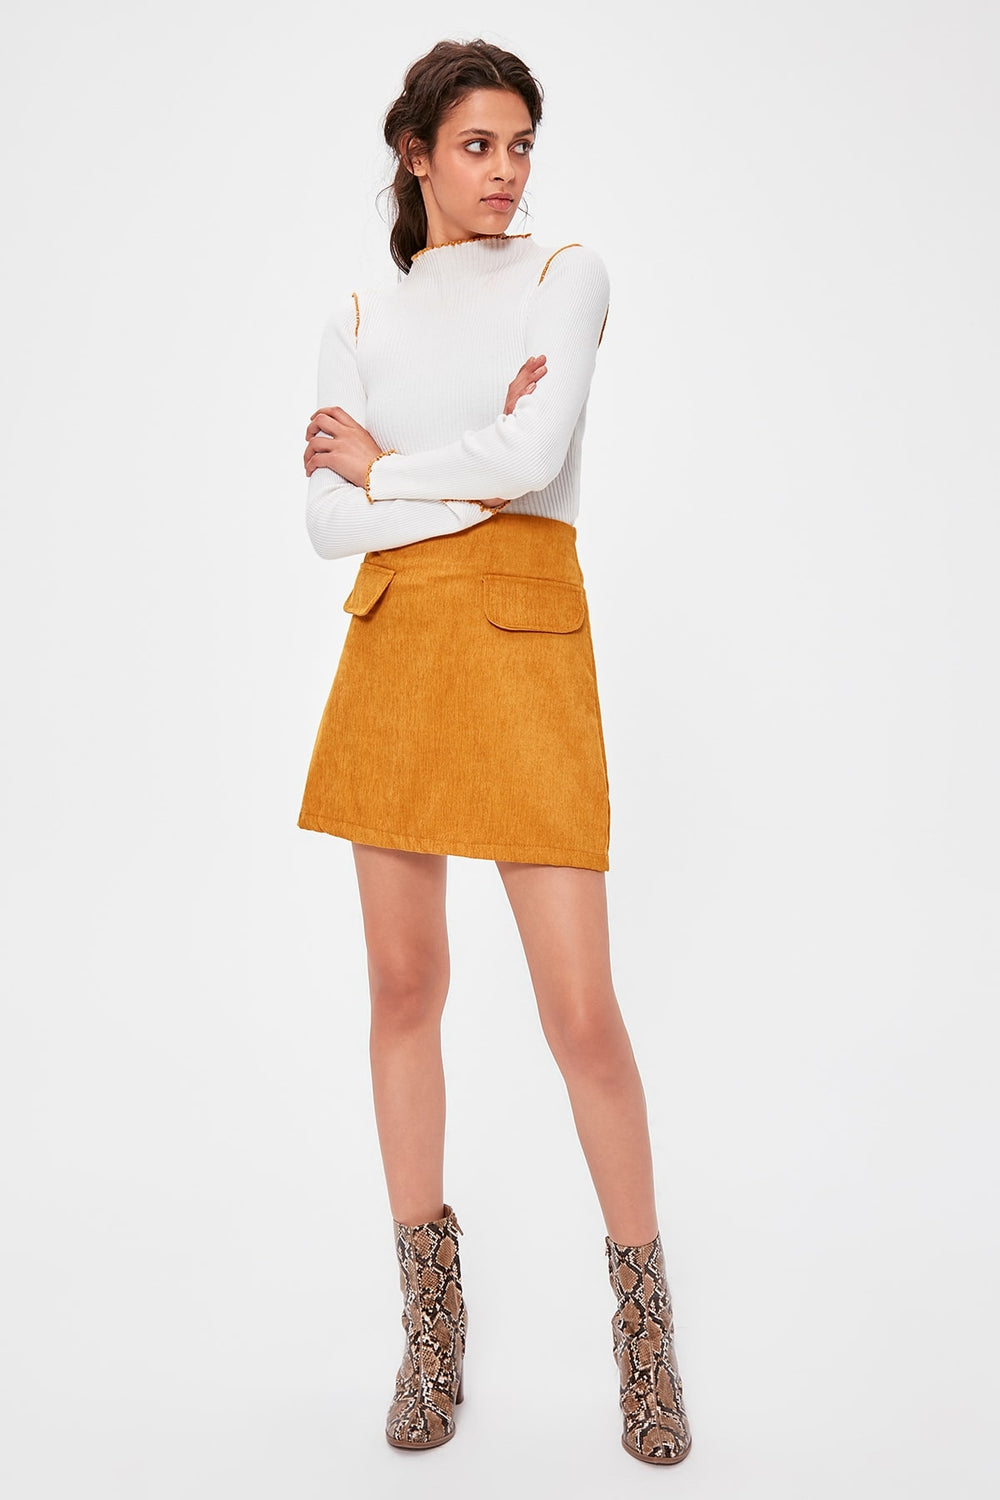 Mustard Pocket Detail Skirt - Top Maxy